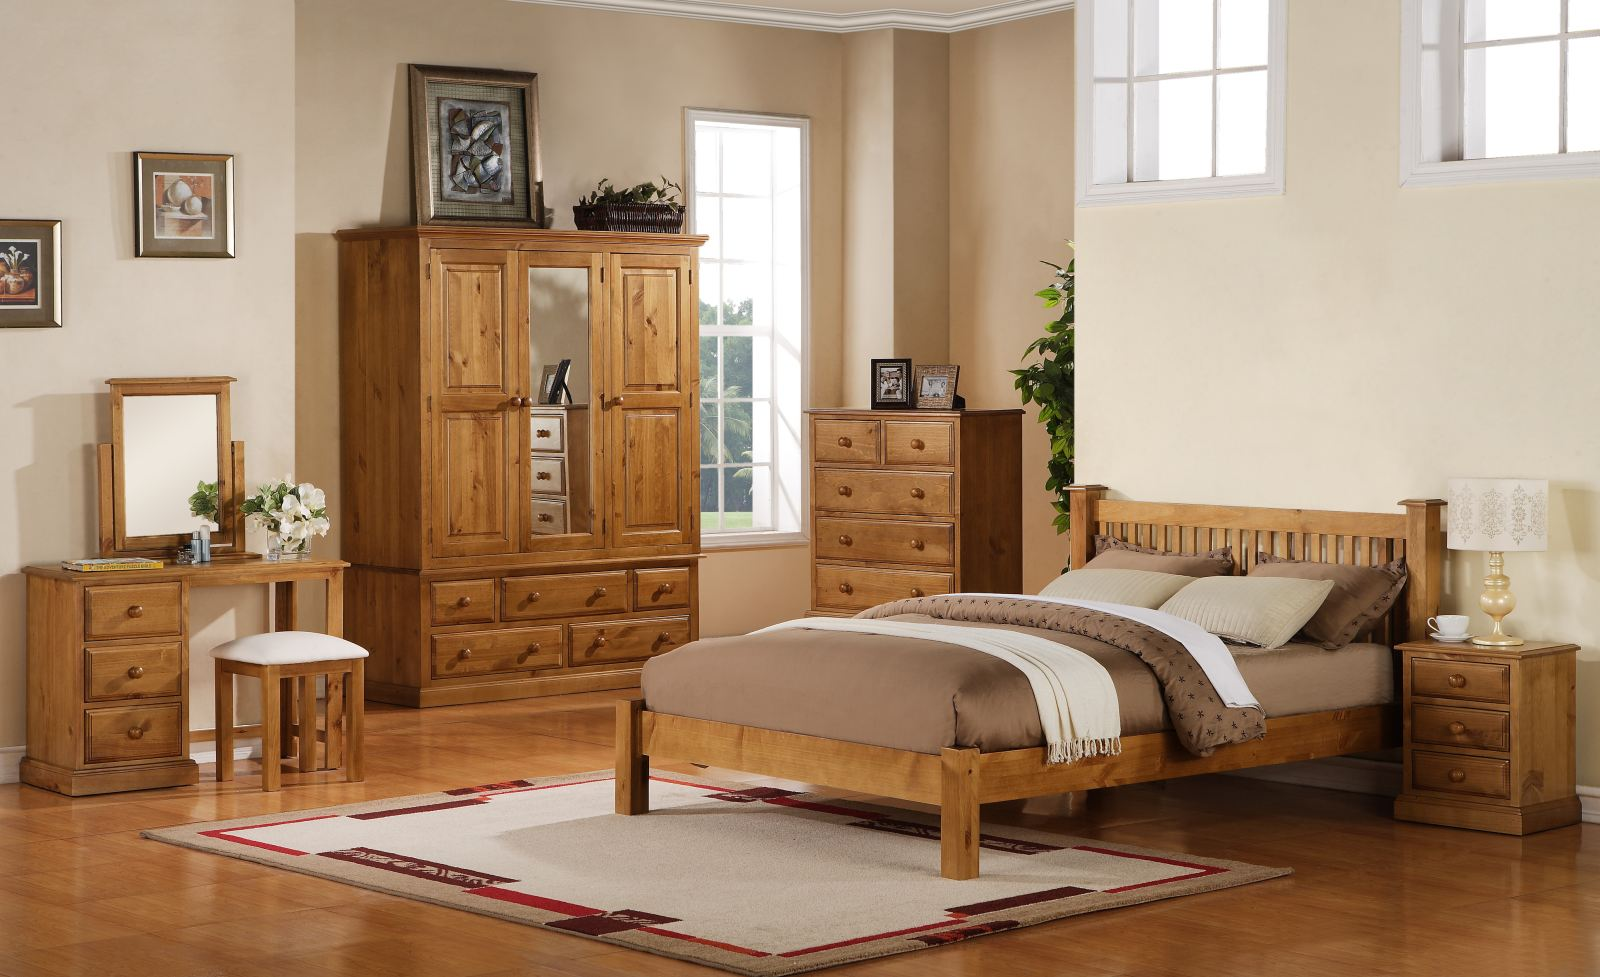 pine bedroom set. pine bedroom furniture Pine Bedroom Furniture Shopping Tips